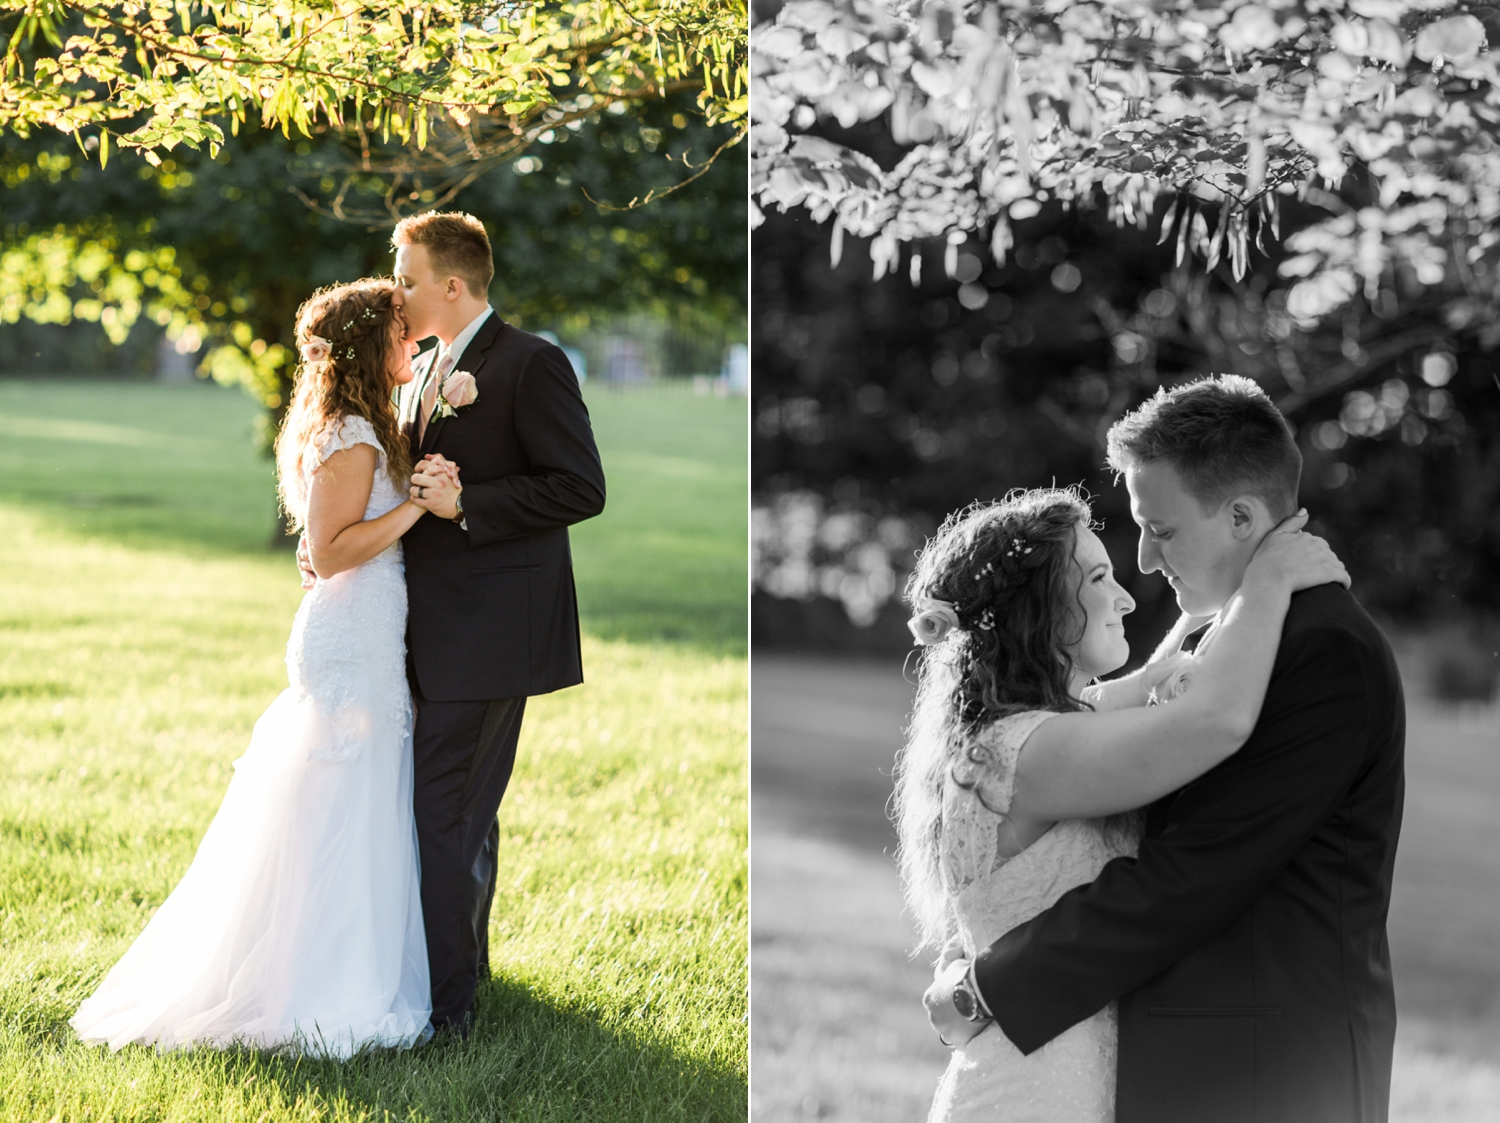 Community_Life_Center_Indianapolis_Indiana_Wedding_Photographer_Chloe_Luka_Photography_6993.jpg